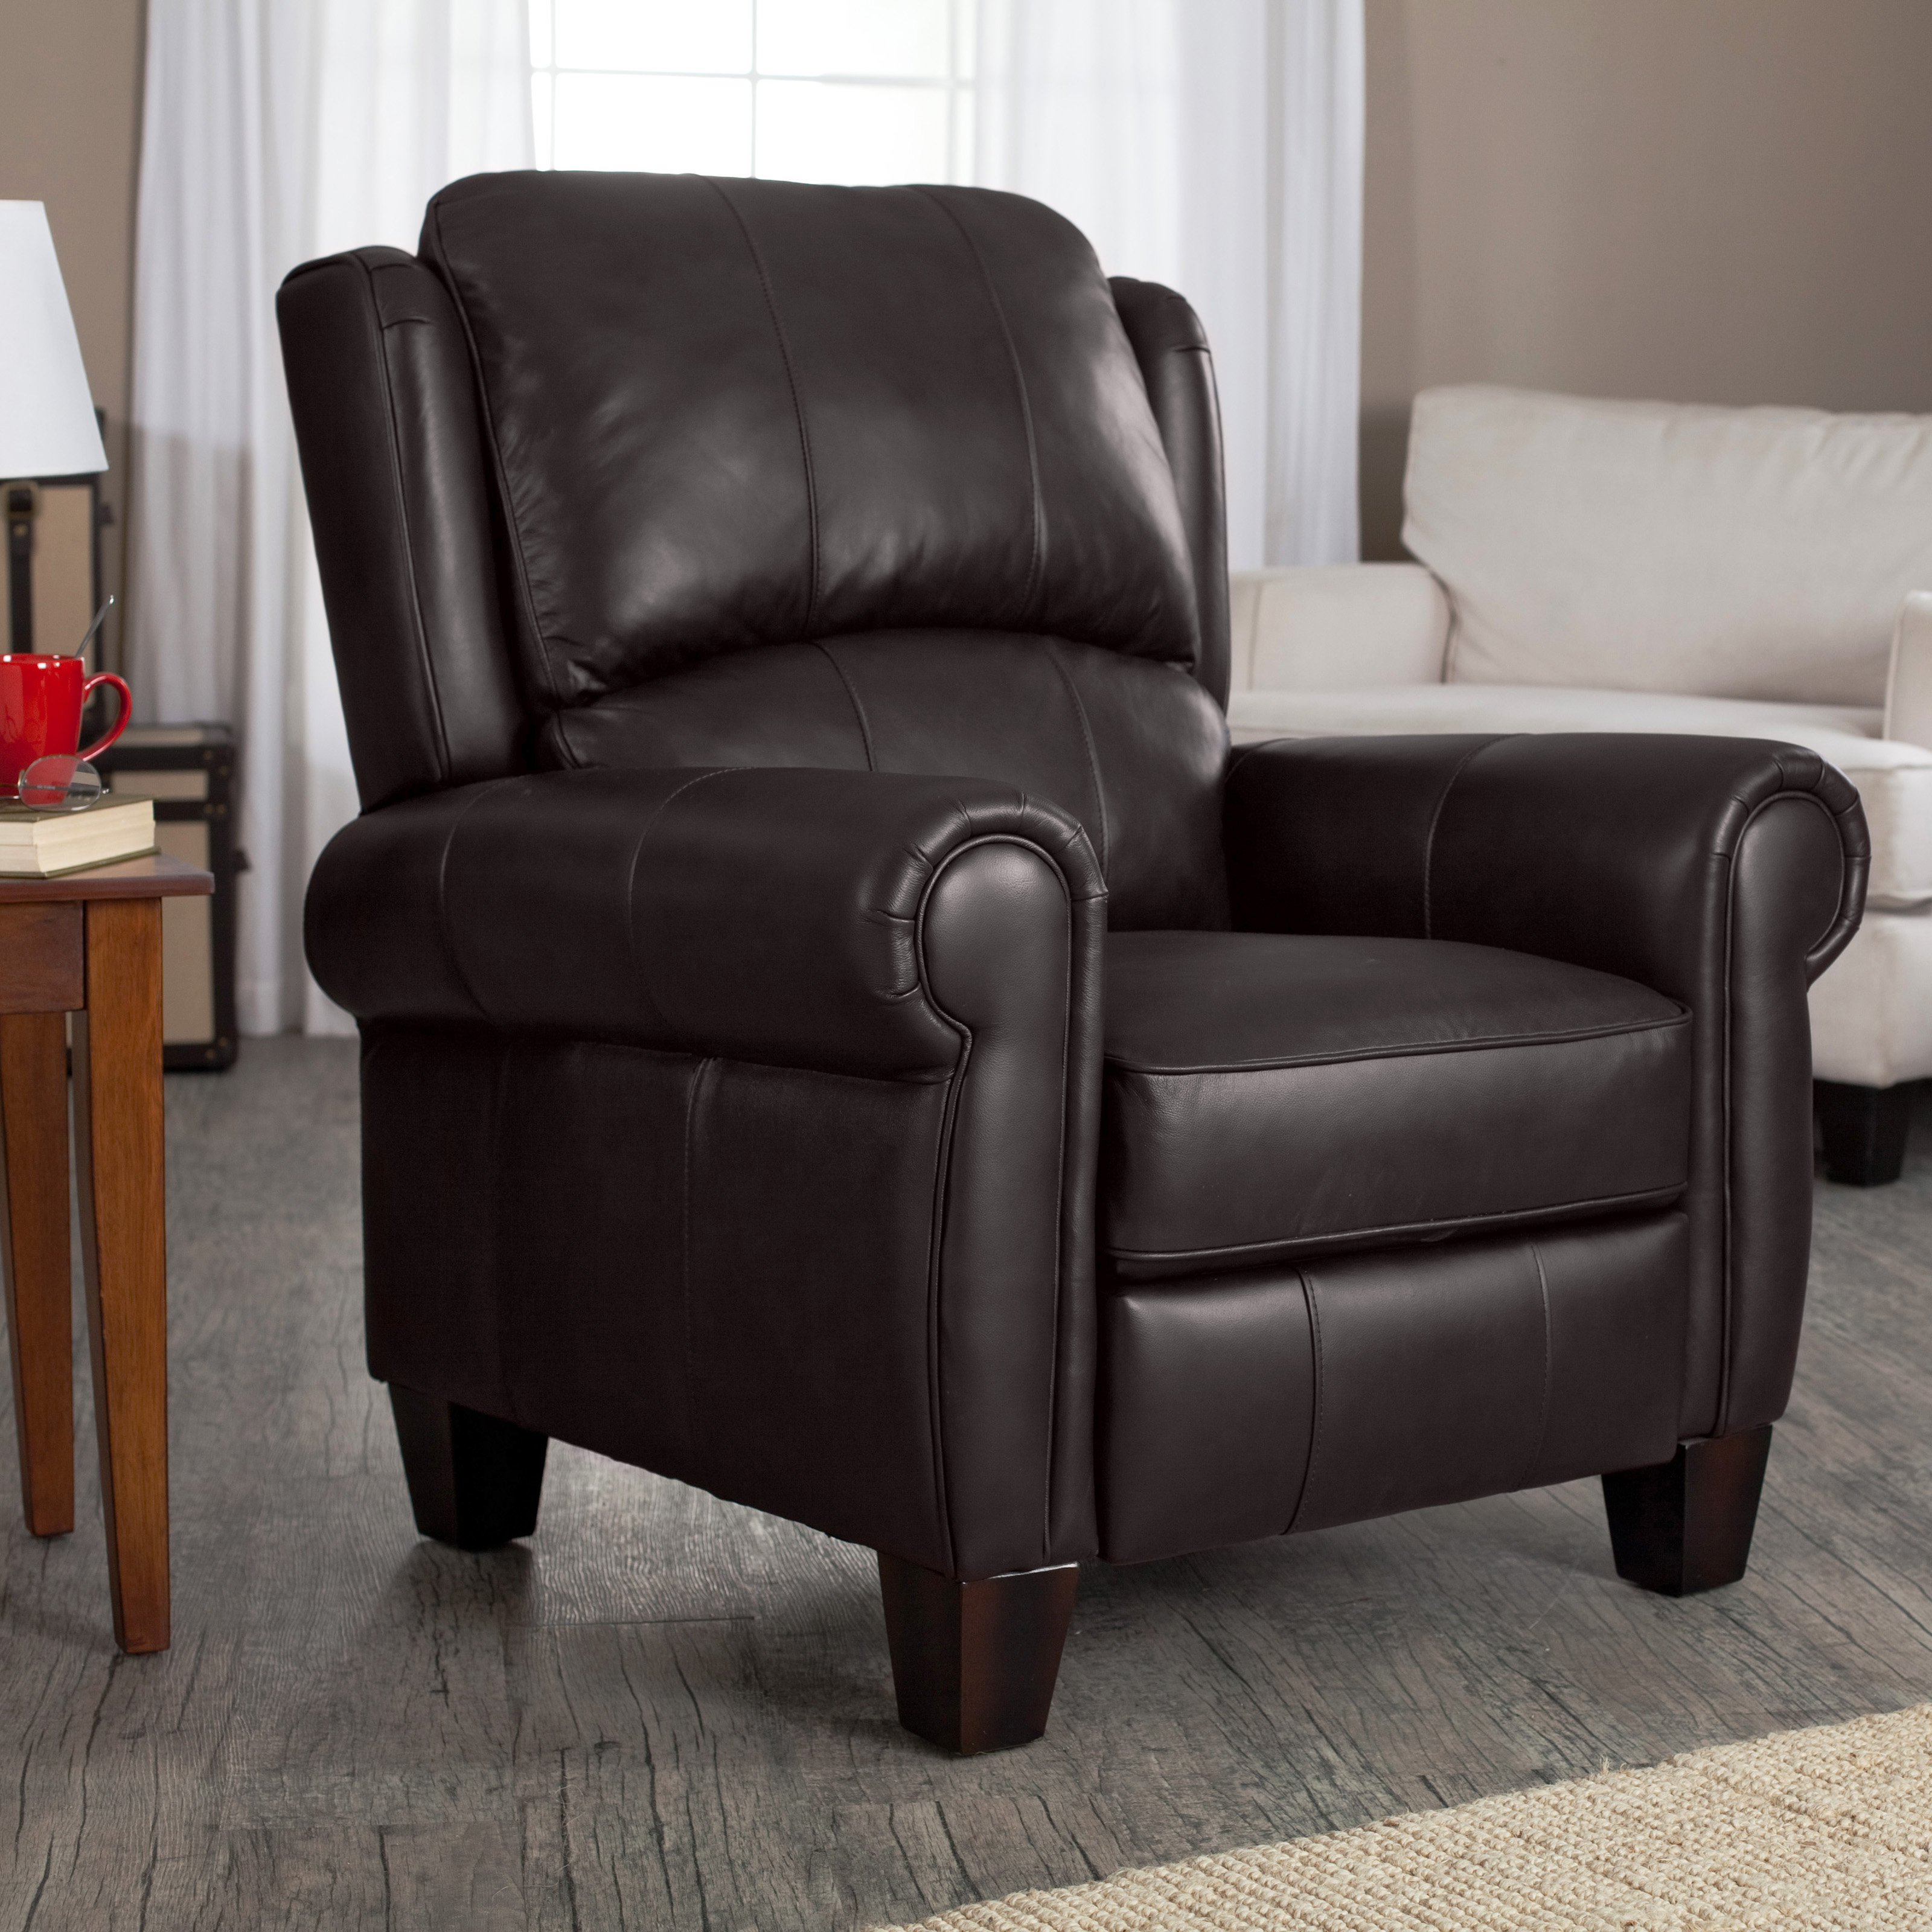 charleston leather push back recliner black accent chairs at hayneedle - Black Leather Recliner Chair